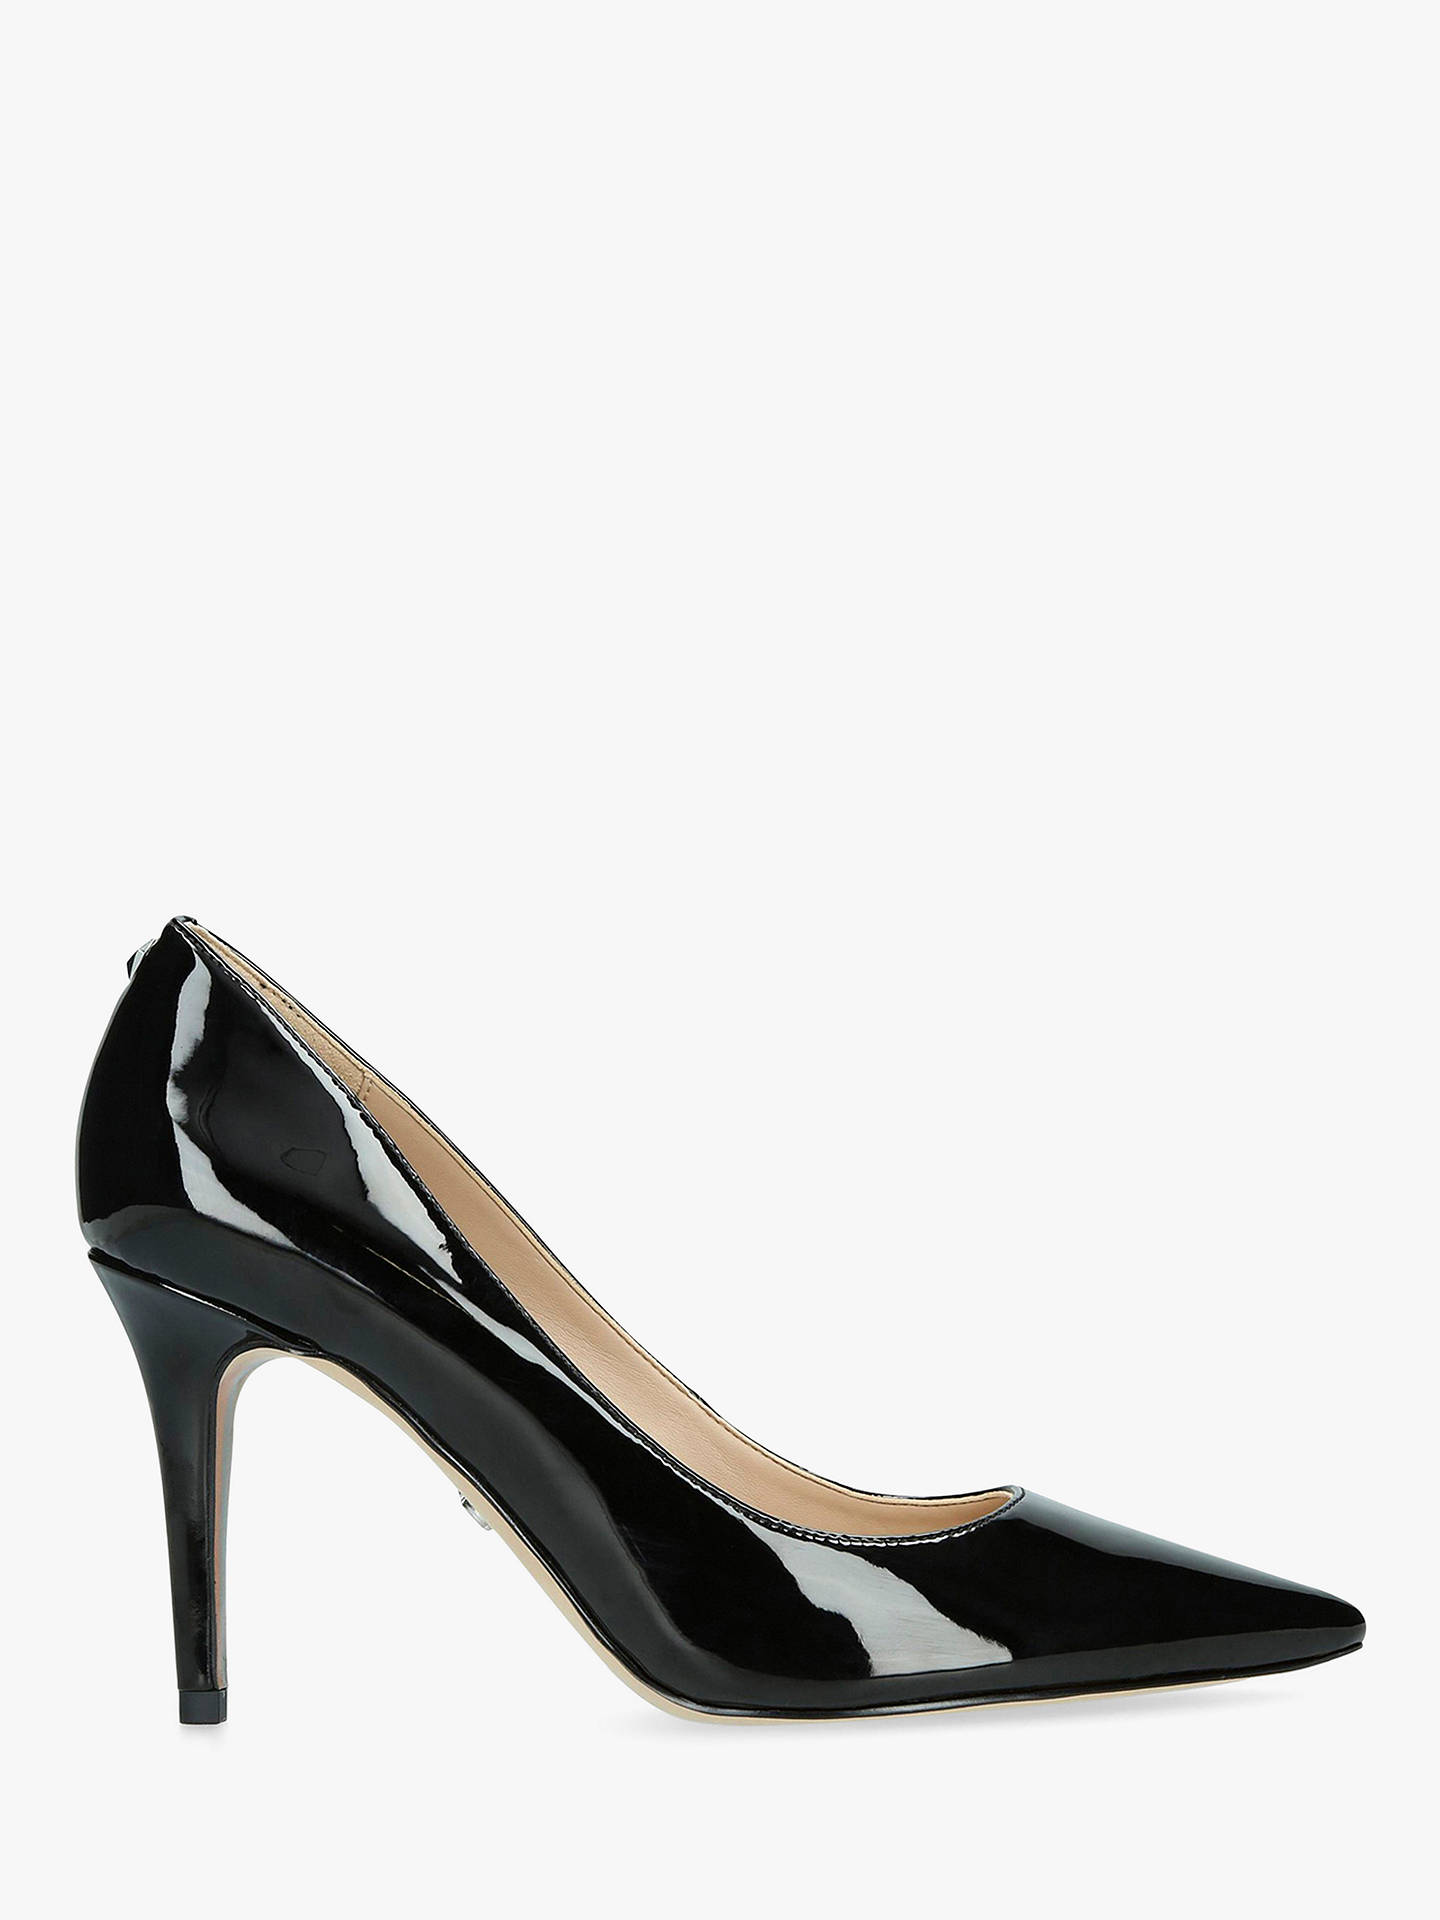 63feebbe6 Sam Edelman Margie Stiletto Heel Court Shoes at John Lewis   Partners